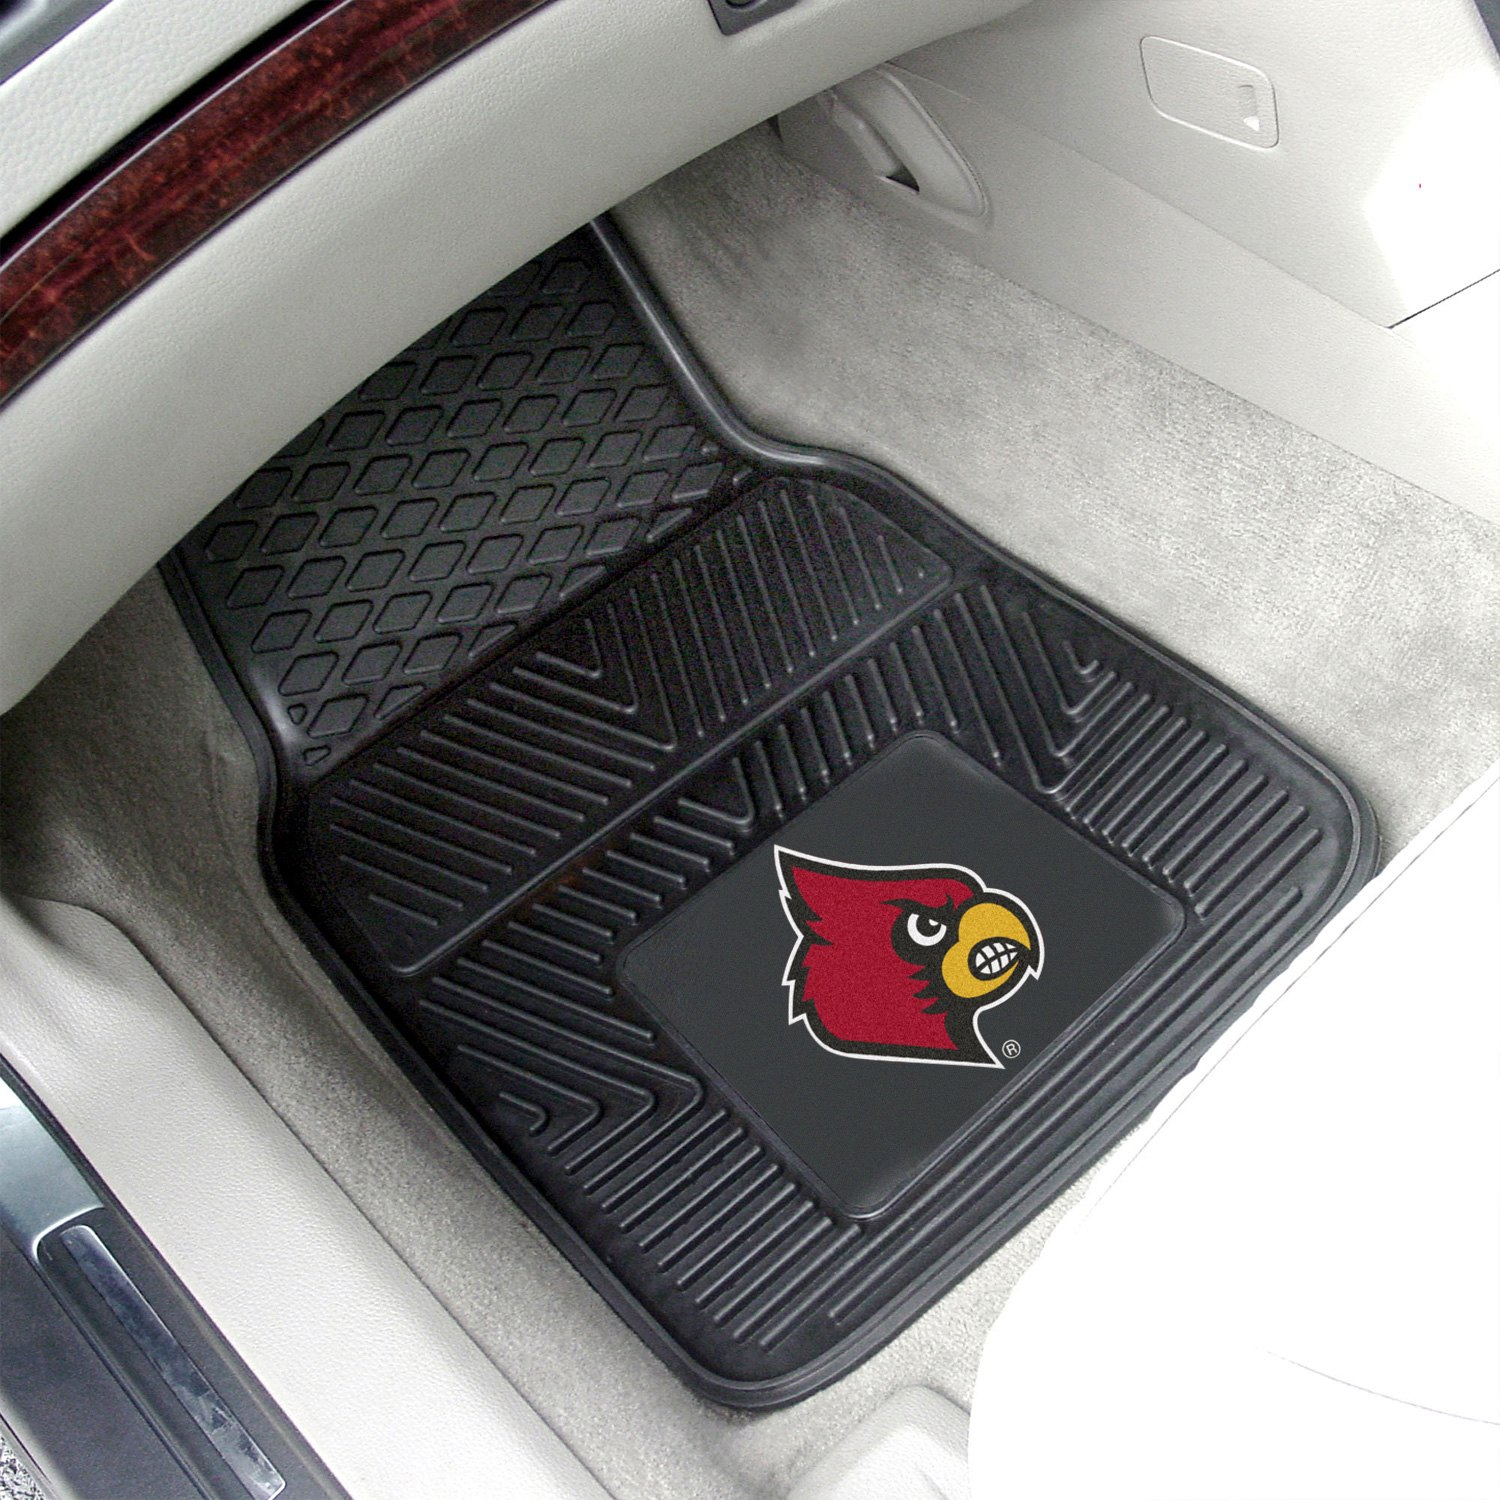 fanmats 8916 1st row collegiate heavy duty vinyl car mats with university of louisville logo. Black Bedroom Furniture Sets. Home Design Ideas